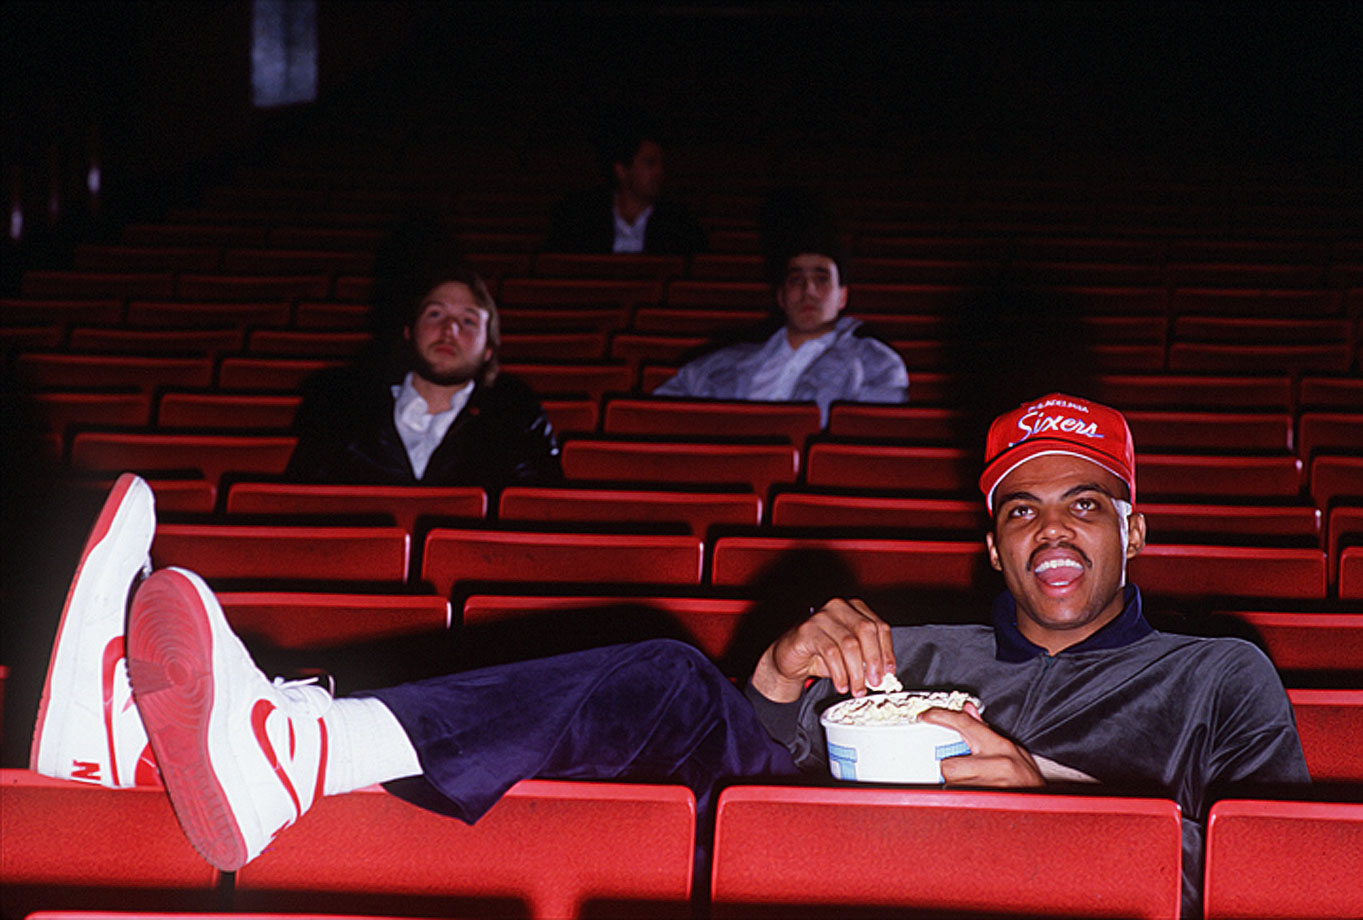 Charles Barkley's gregarious personality quickly made him a fan favorite. In this photo, the Alabama native takes in a movie at a Philadelphia theater.